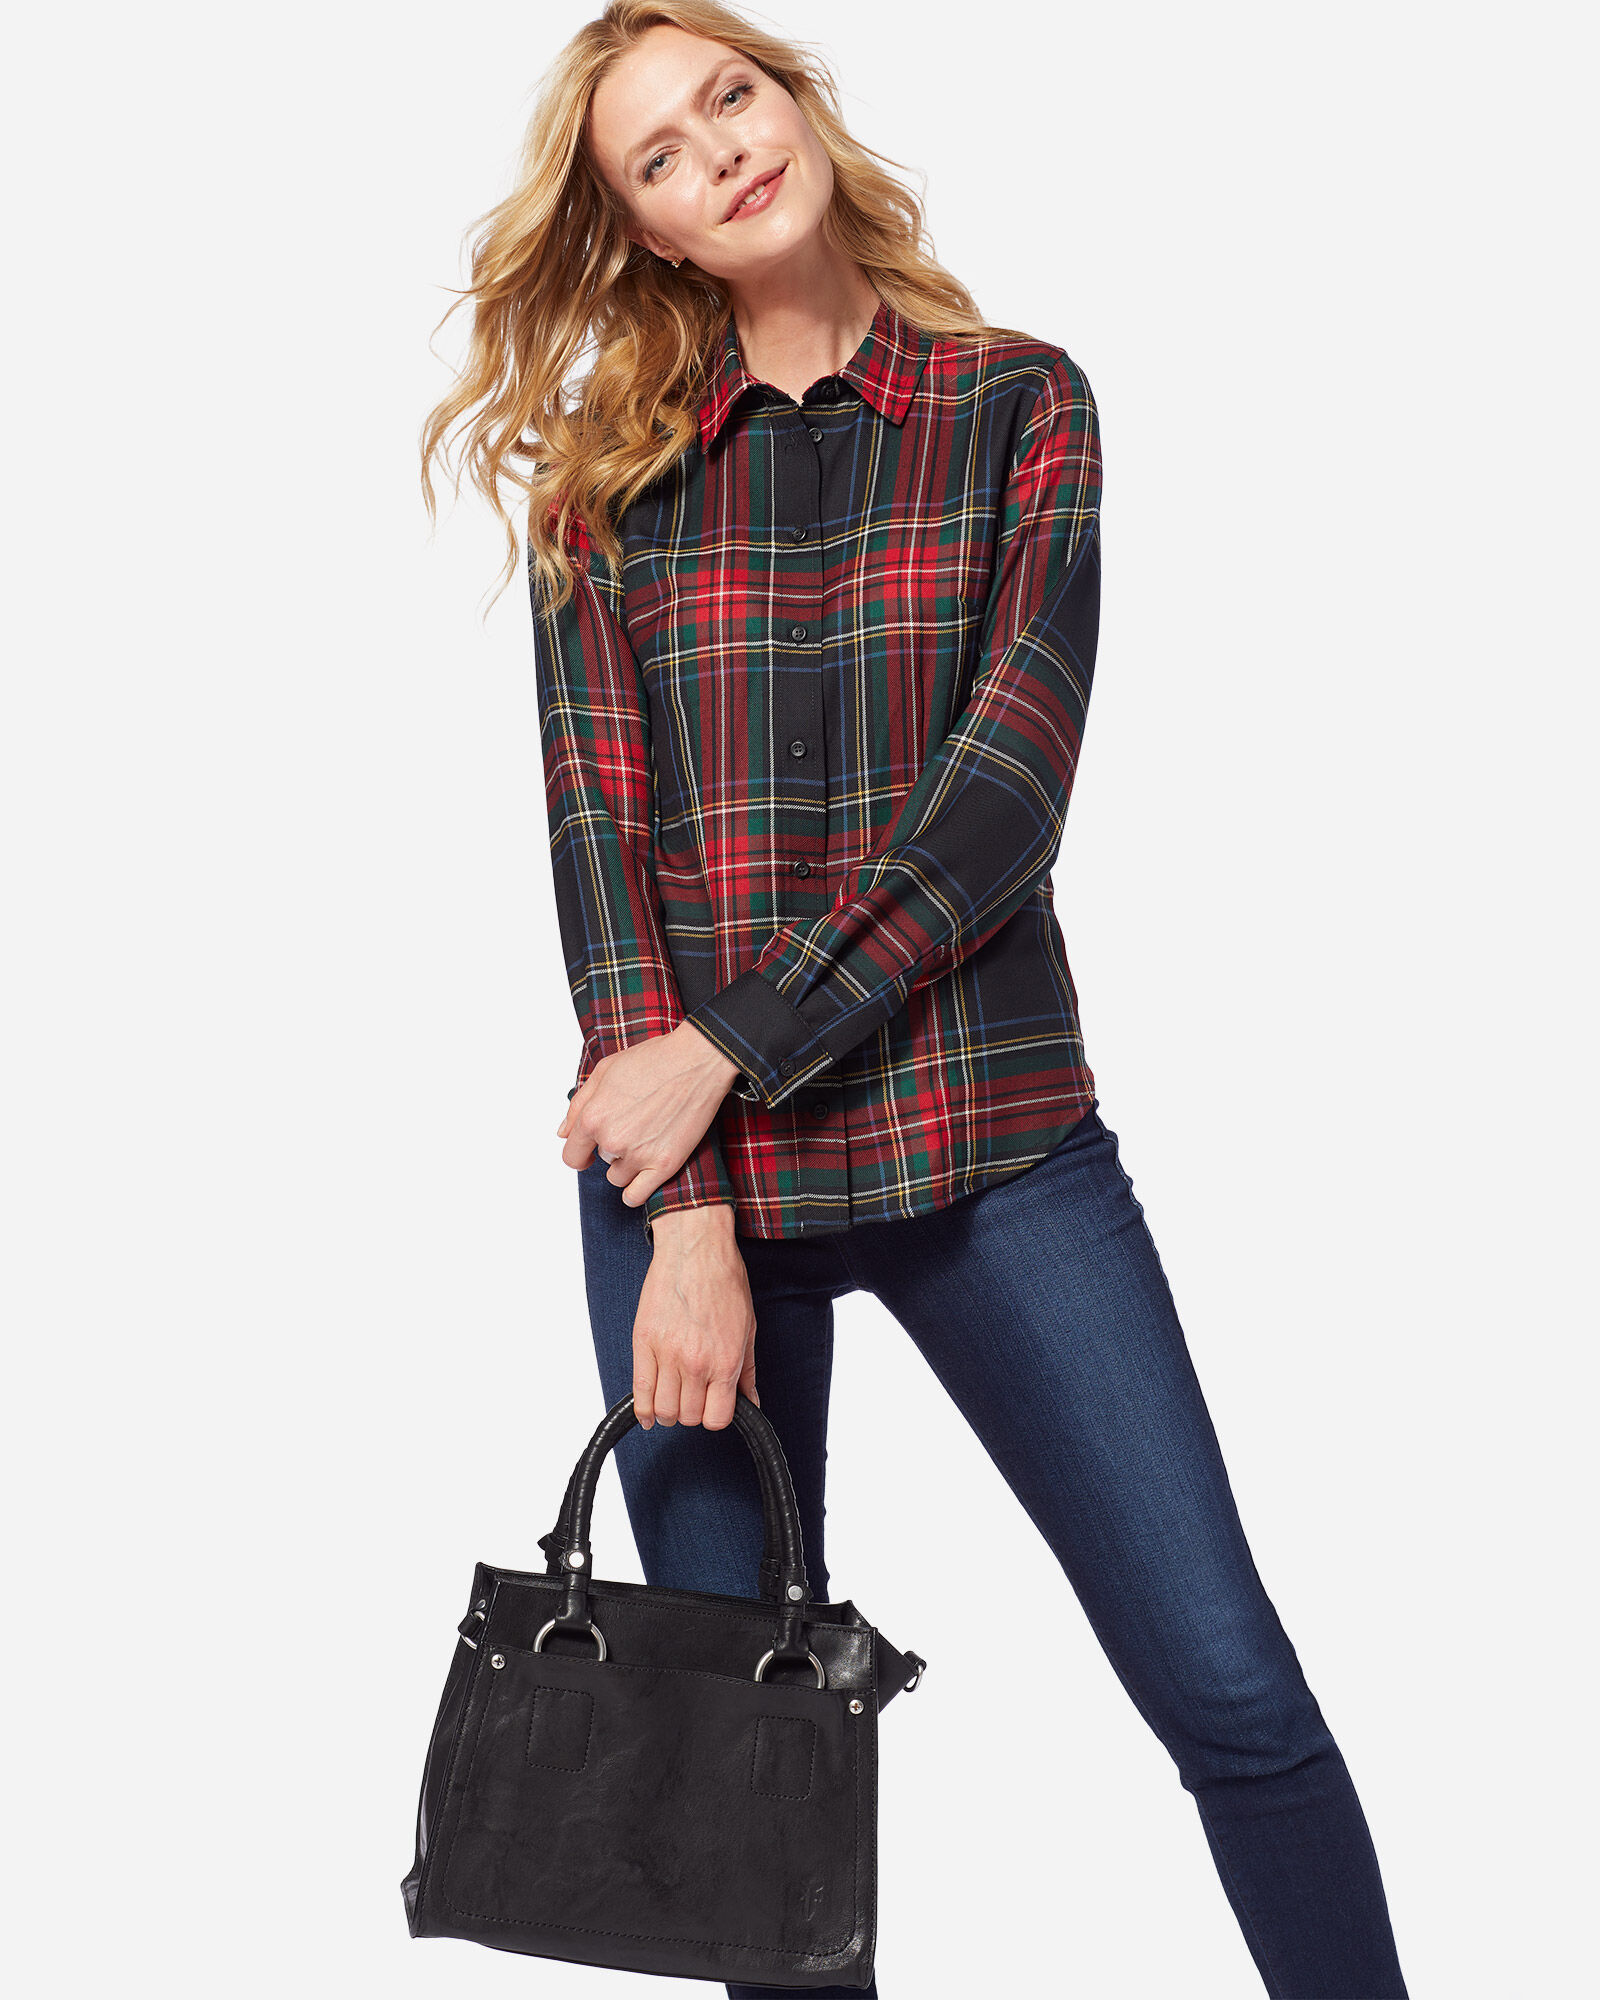 Tartan and plaid shirts for women recommend to wear for autumn in 2019